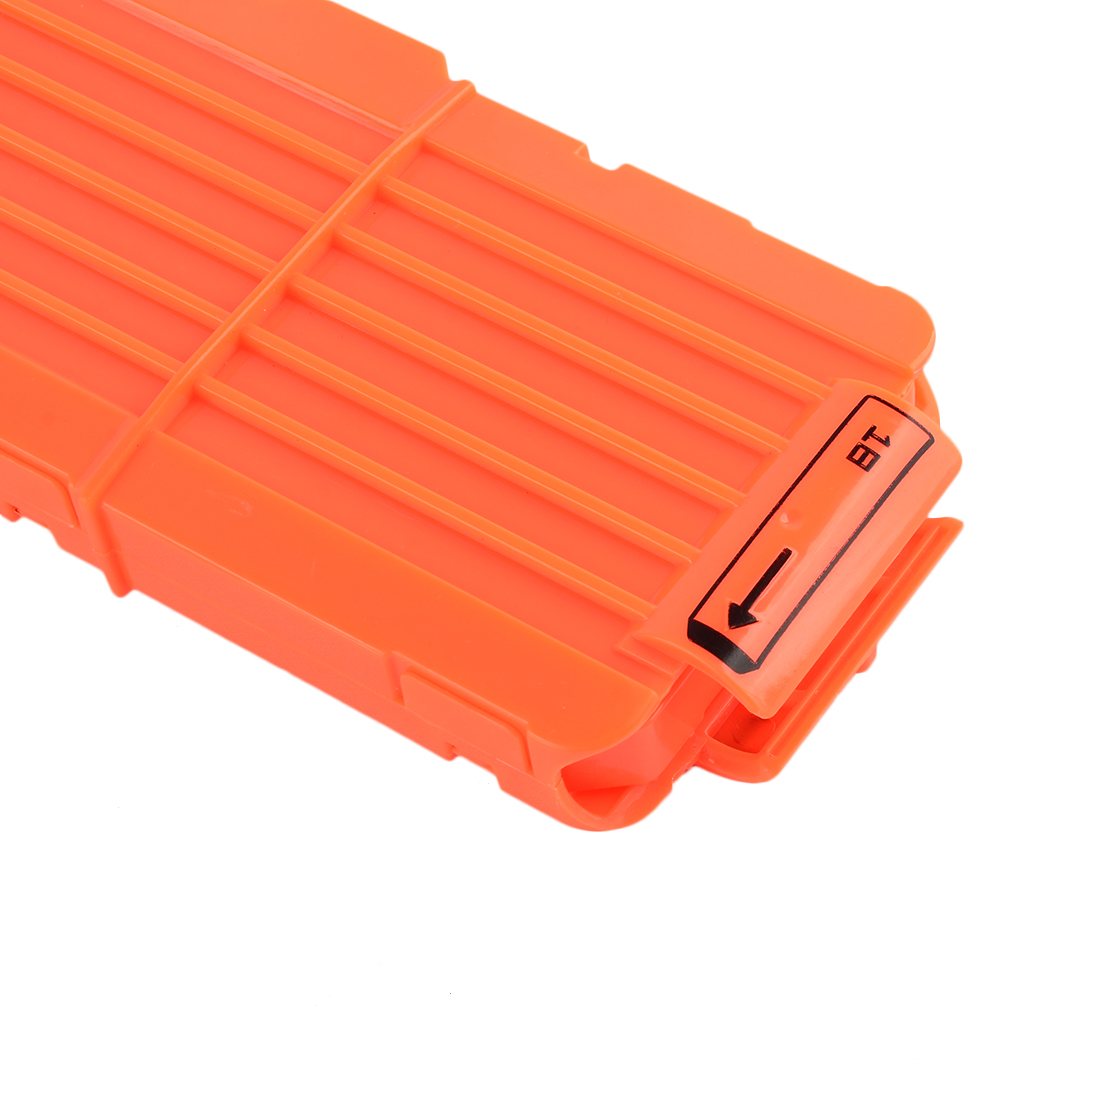 Surwish-Soft-Bullet-Clips-For-Nerf-Toy-Gun-18-Bullets-Ammo-Cartridge-Dart-For-Nerf-Gun-Clips-Orange-3